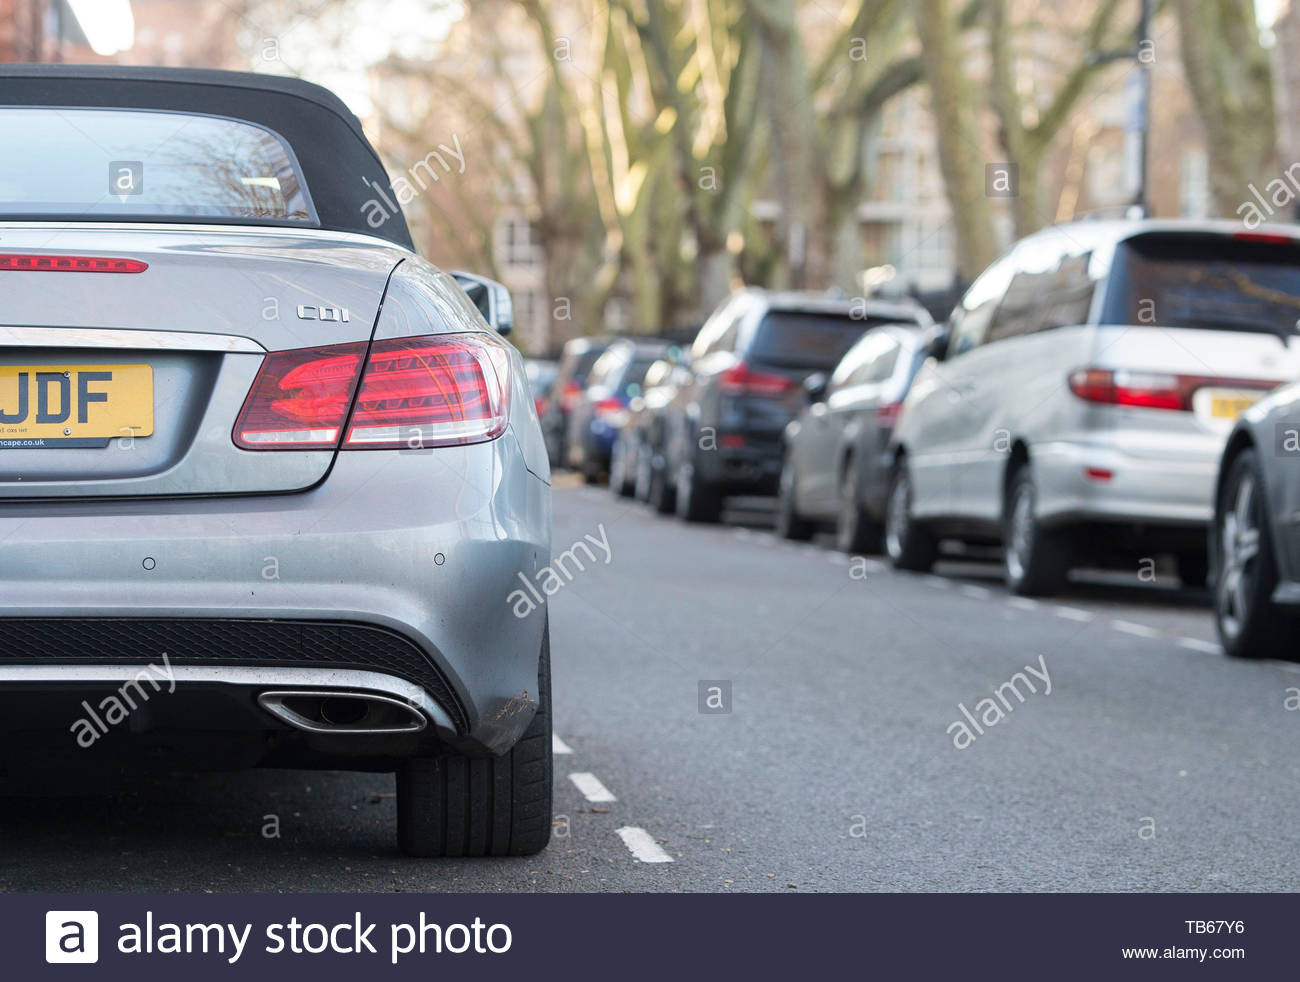 File photo dated 16/01/16 of cars parked on a residential street in London. National guidelines for sharing parking data will make it easier for drivers to find a space, the Department for Transport (DfT) has claimed. Stock Photo